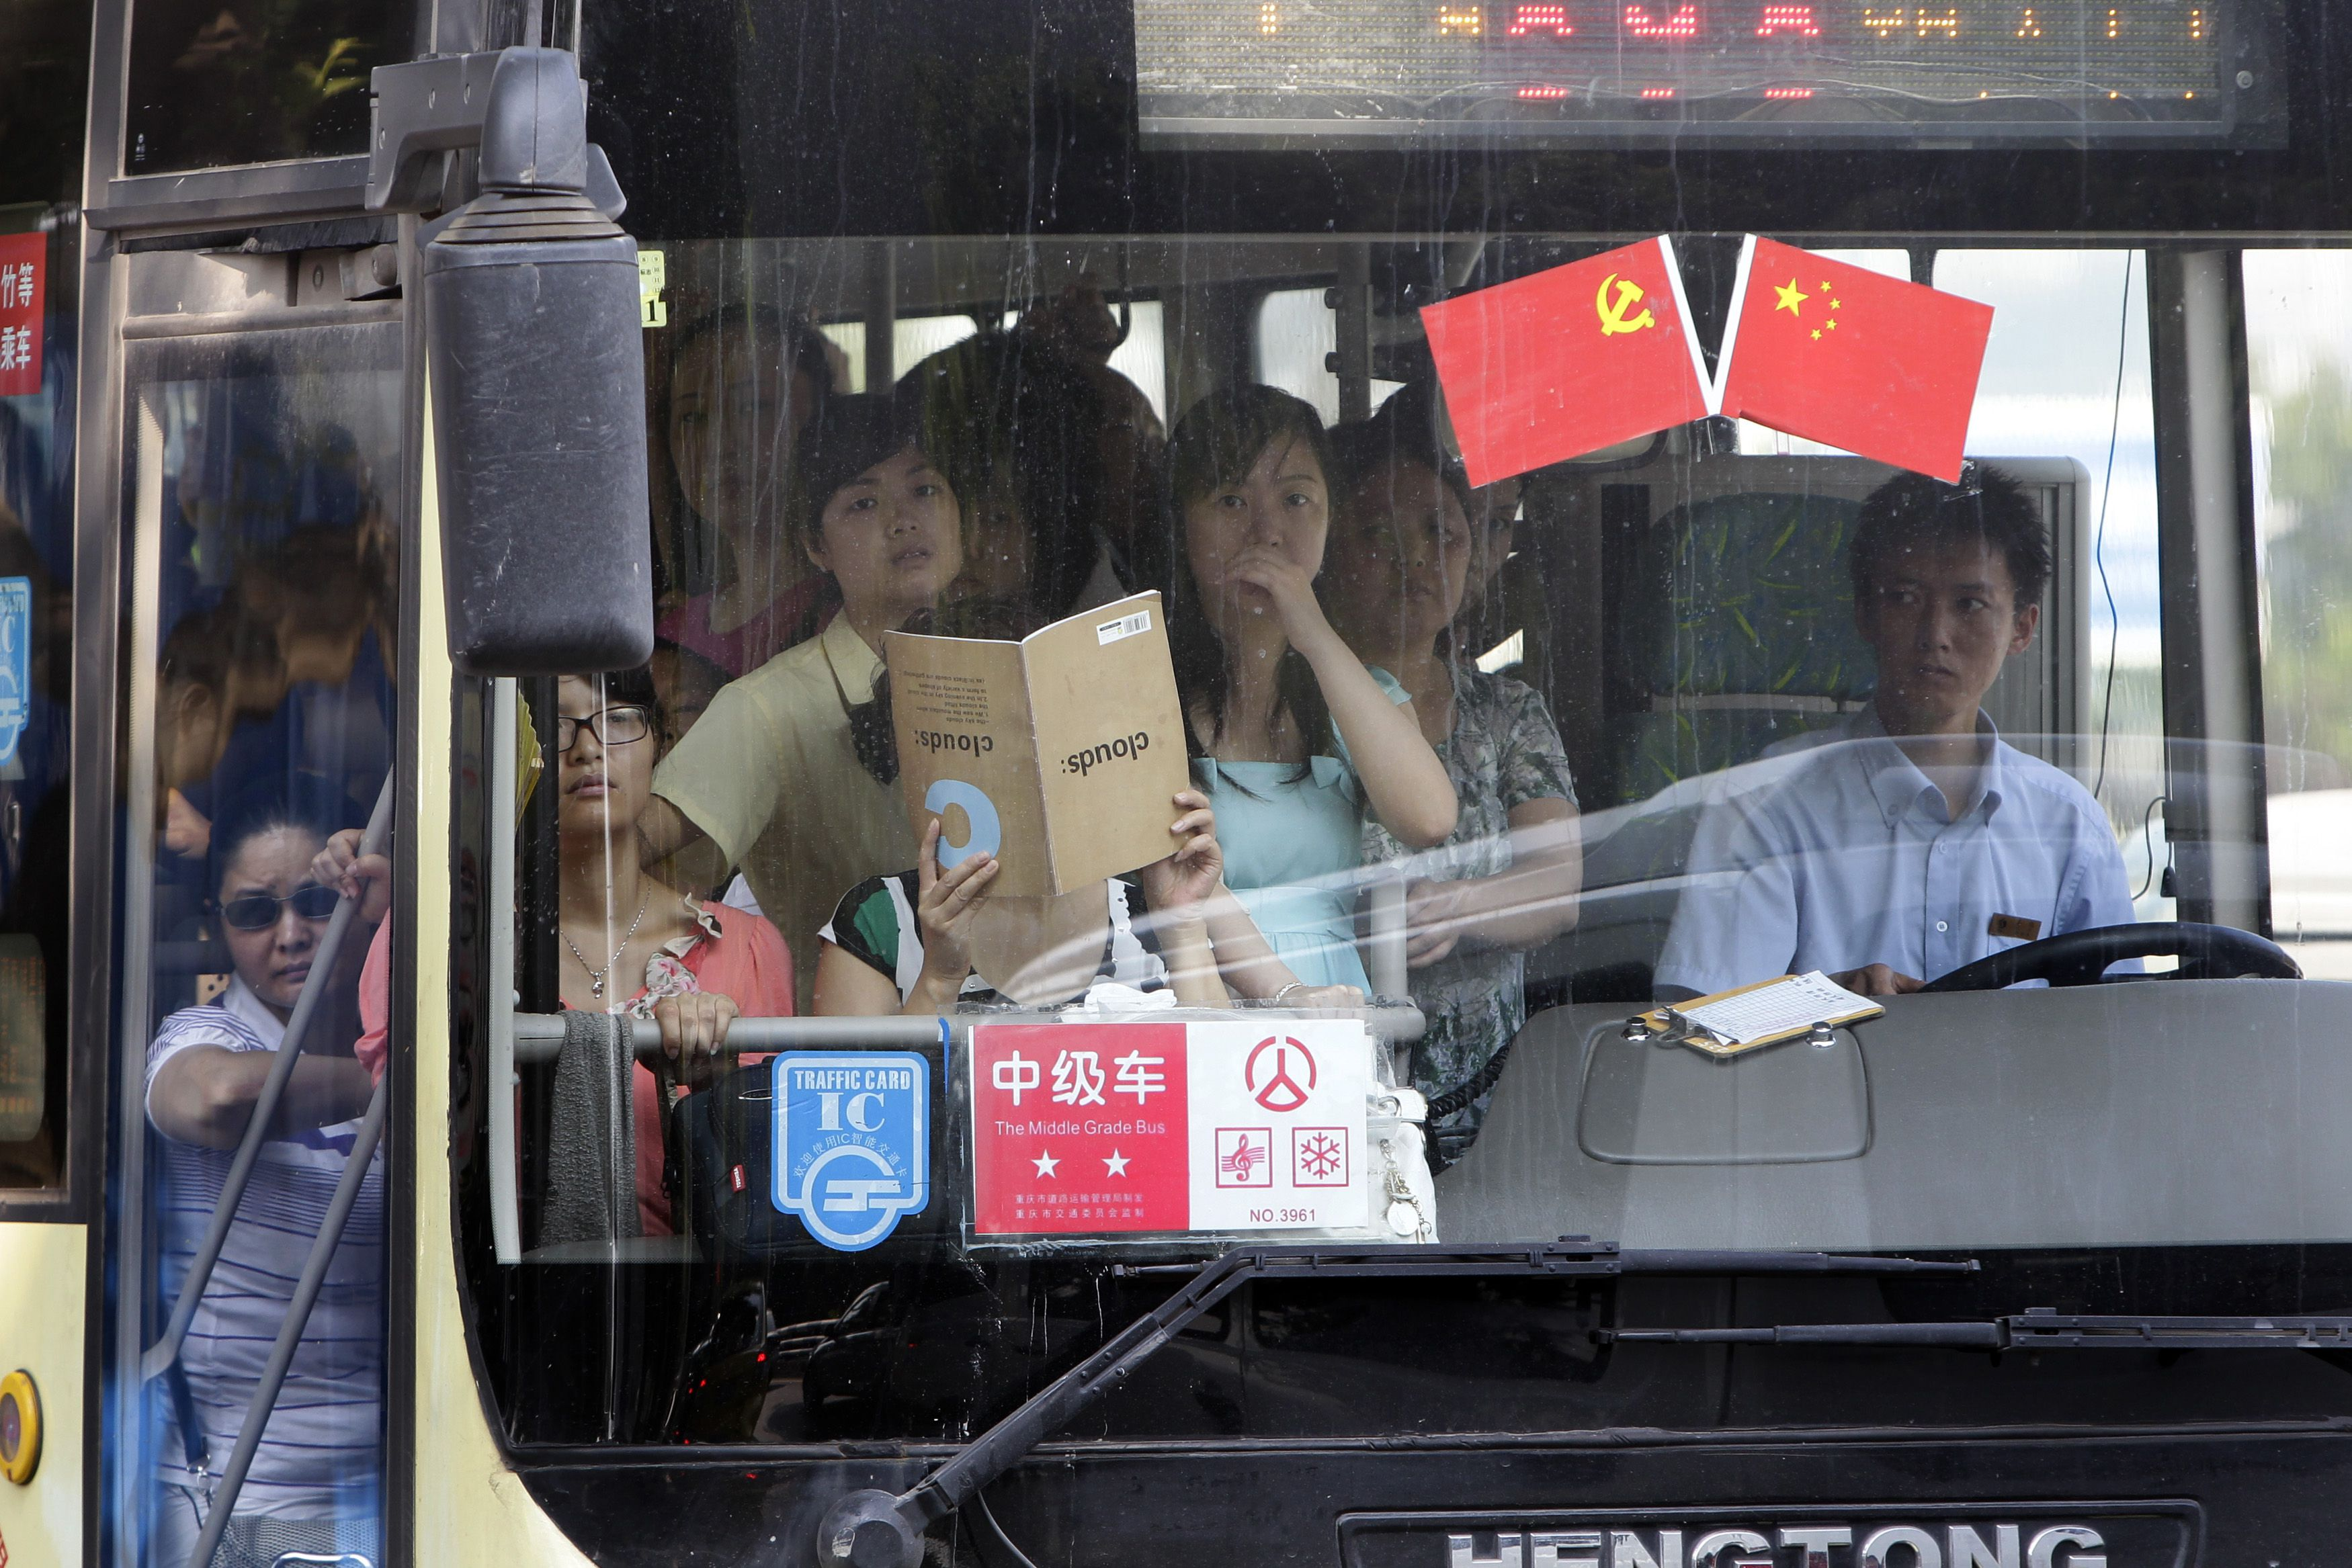 Passengers stand in a crowded bus decorated with Chinese national and communist party flags to celebrate the upcoming 90th anniversary of the founding of the Communist Party of China (CPC) in Chongqing municipality June 30, 2011